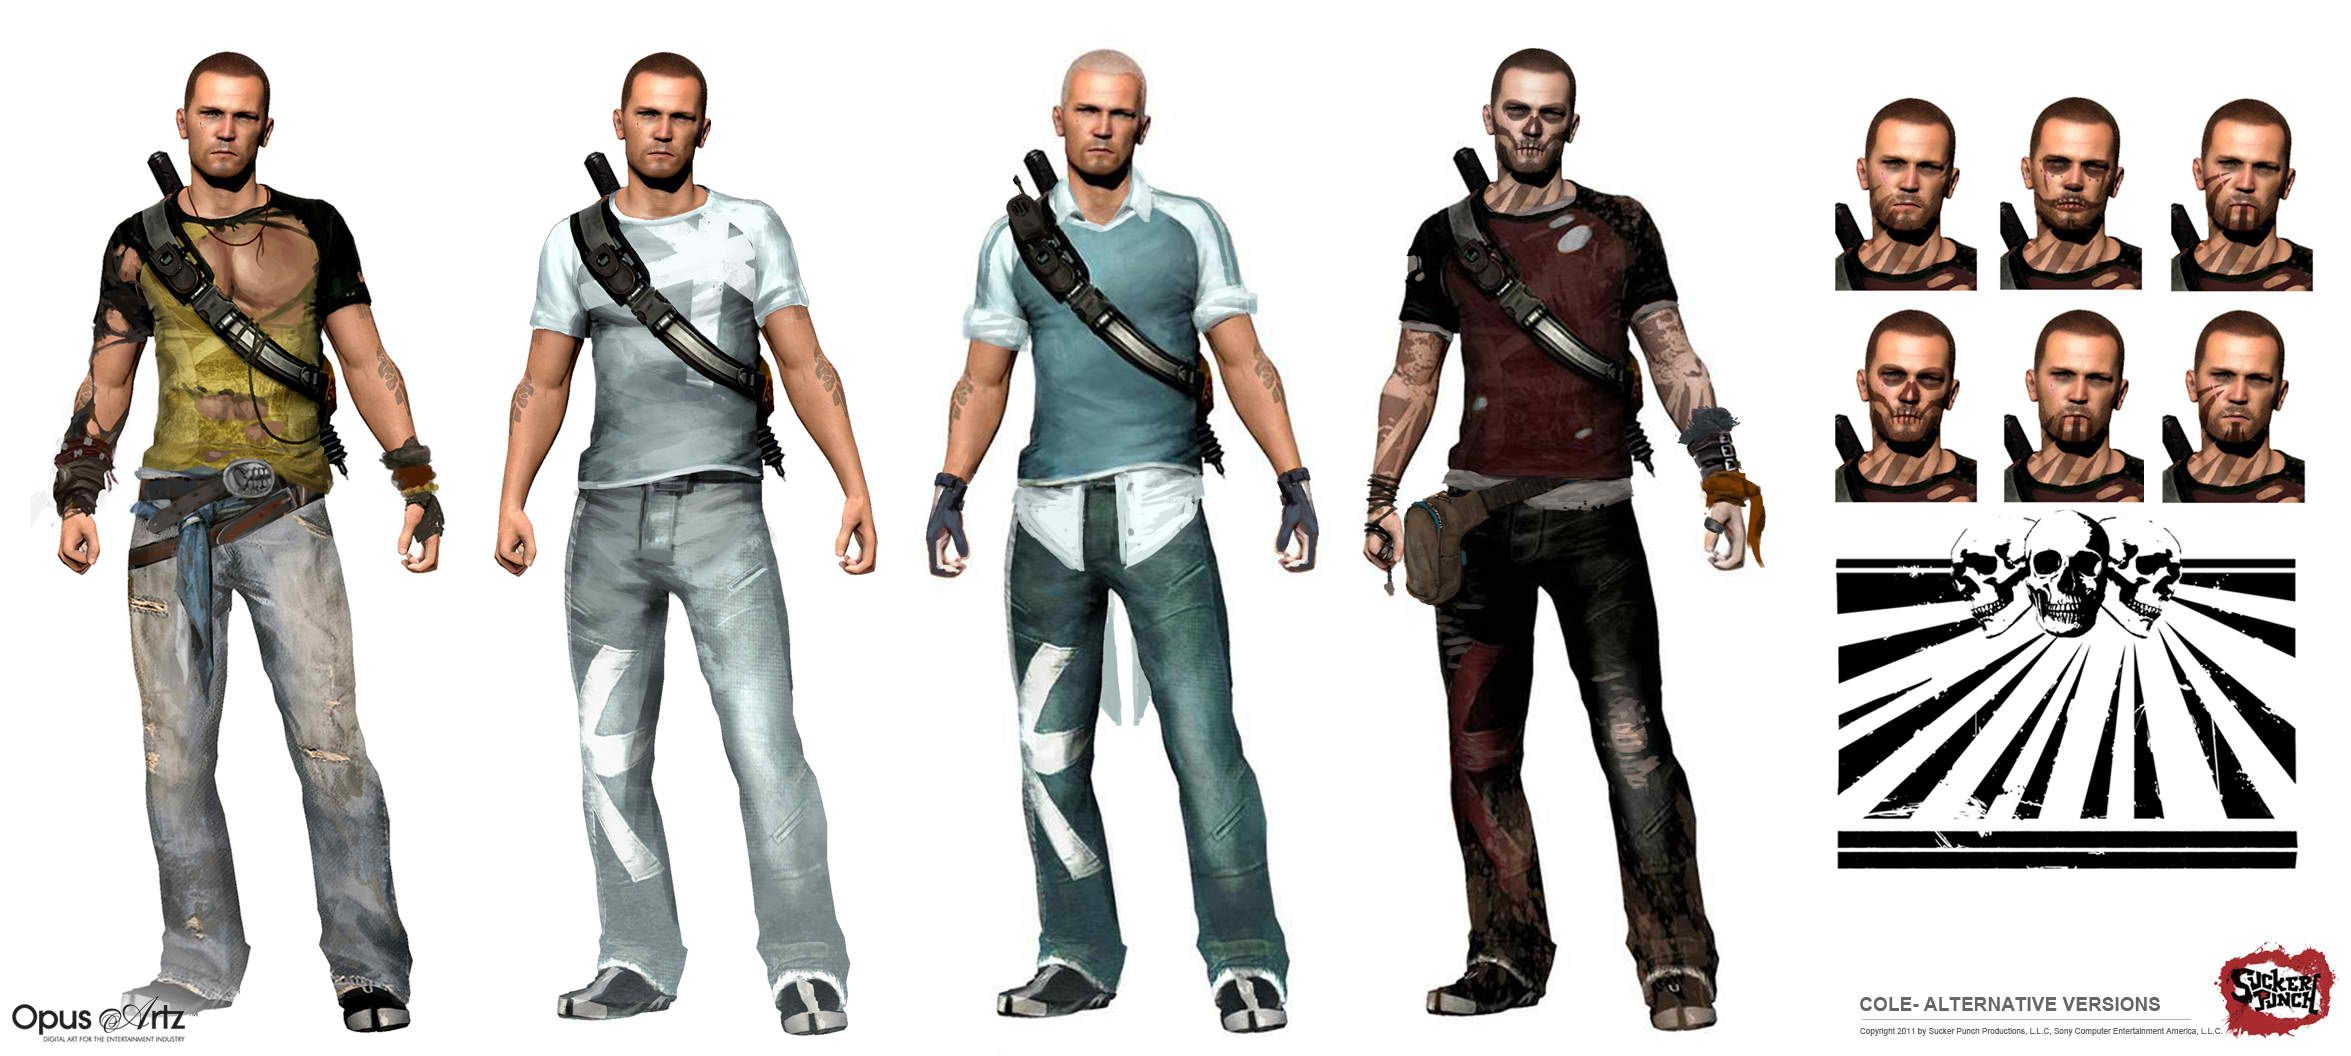 Latest 2351 1056 Infamous 2 Modern Outfits Video Game Art